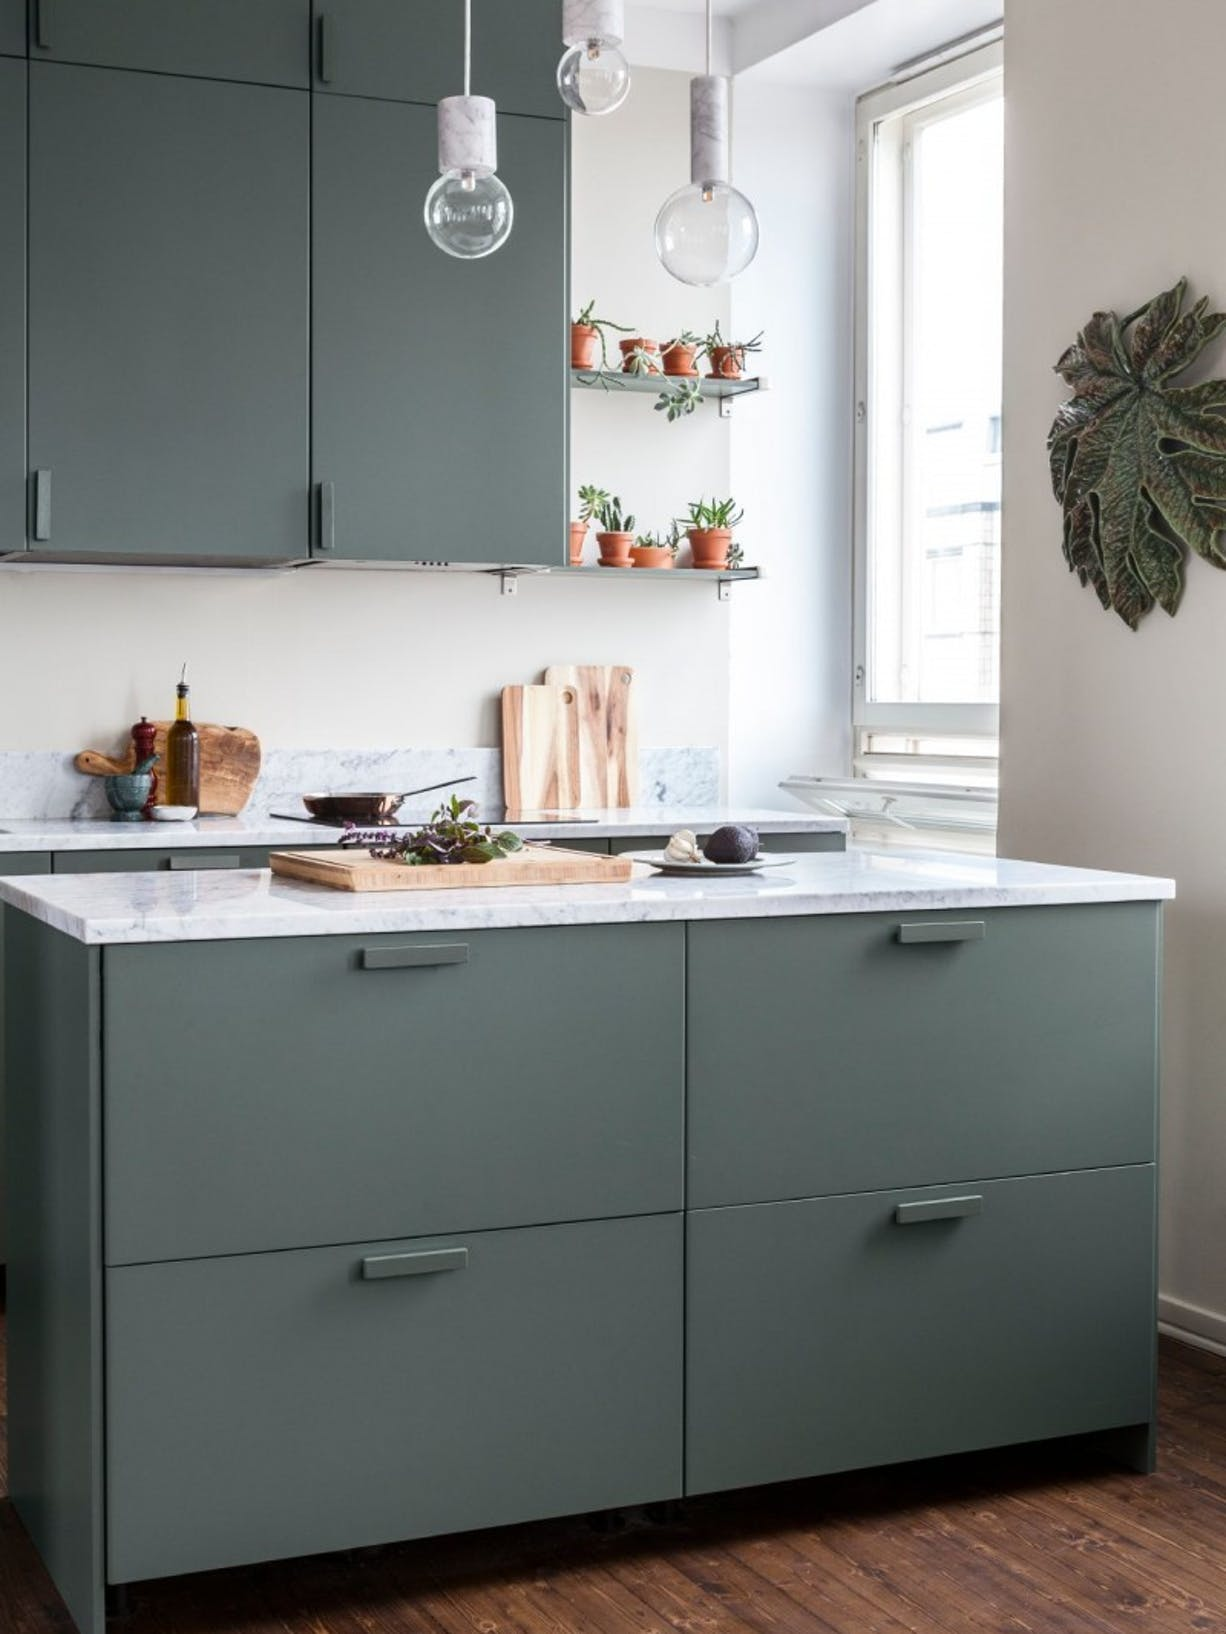 DIY Painted Kitchen Cupboard Refresh - Tikkurila Abyss - right image